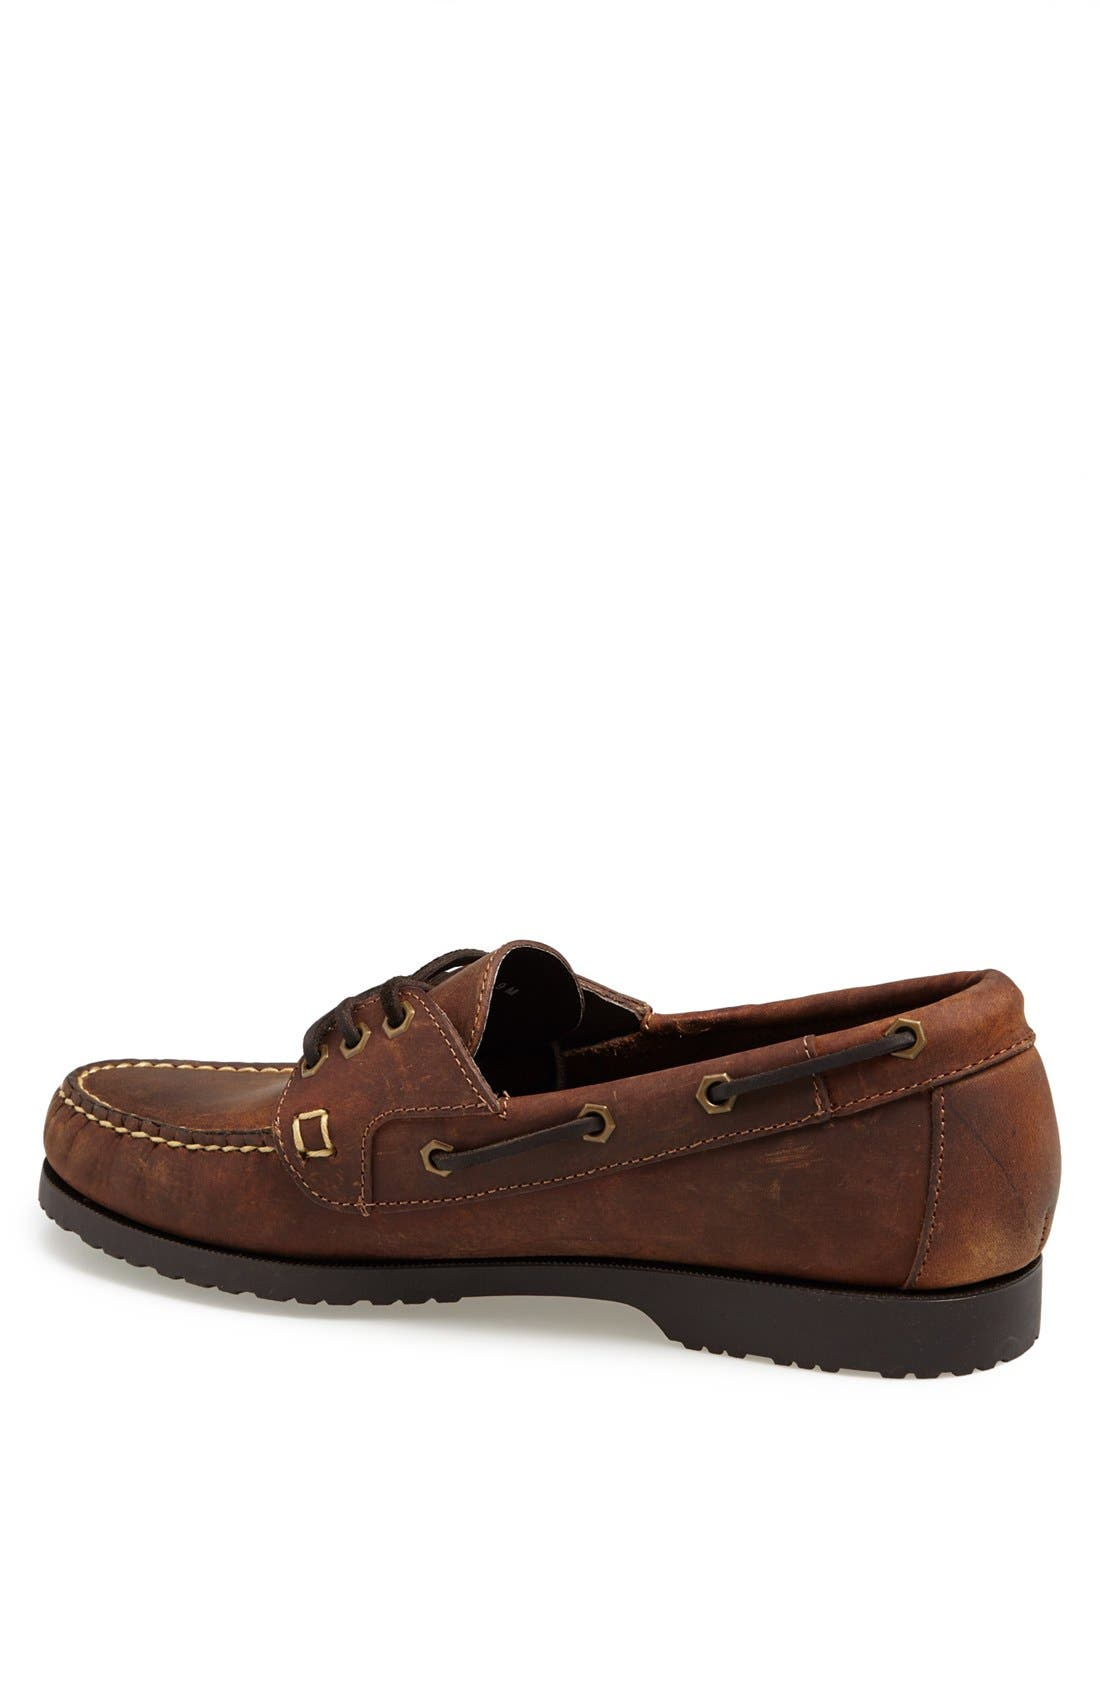 Alternate Image 2  - Eastland 'Ashland 1955' Boat Shoe